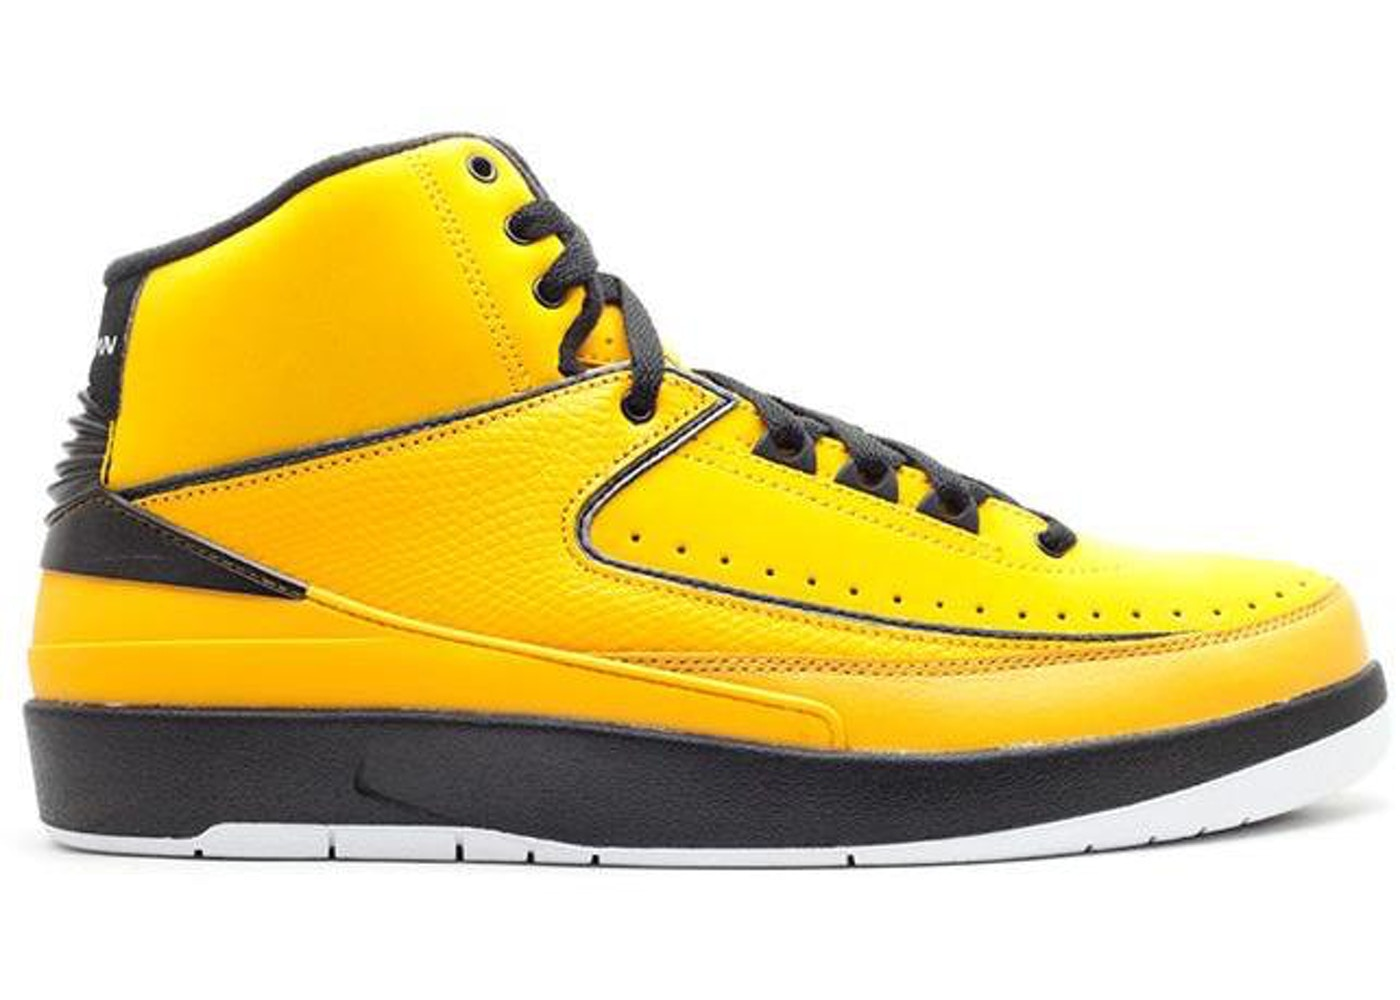 9d0dc37f2de956 Air Jordan 2 Shoes - Last Sale